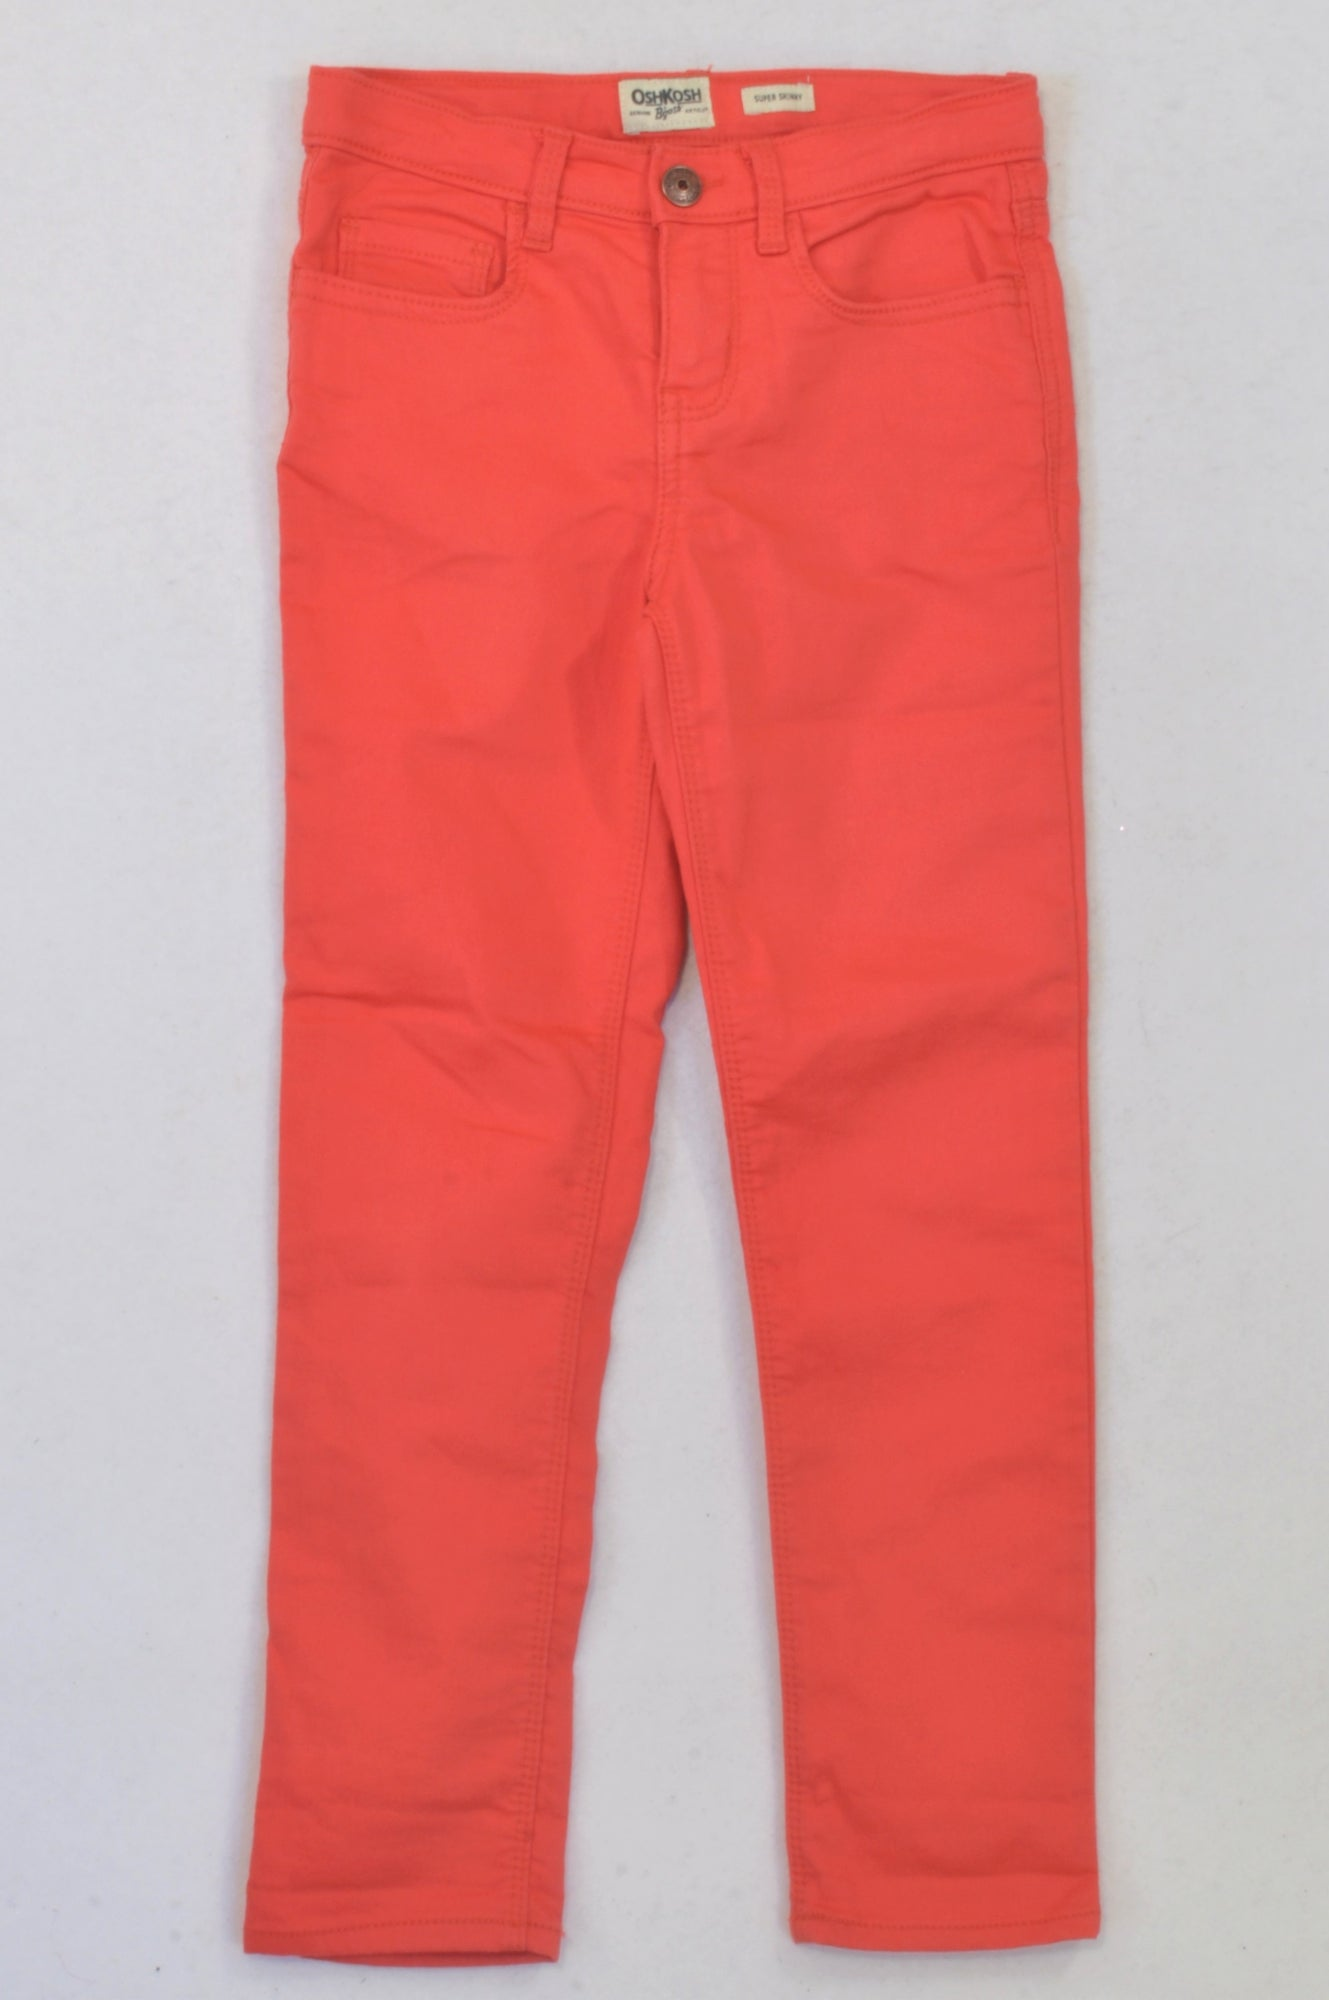 OshKosh Coral Skinny Leg Jeggings Girls 6-7 years